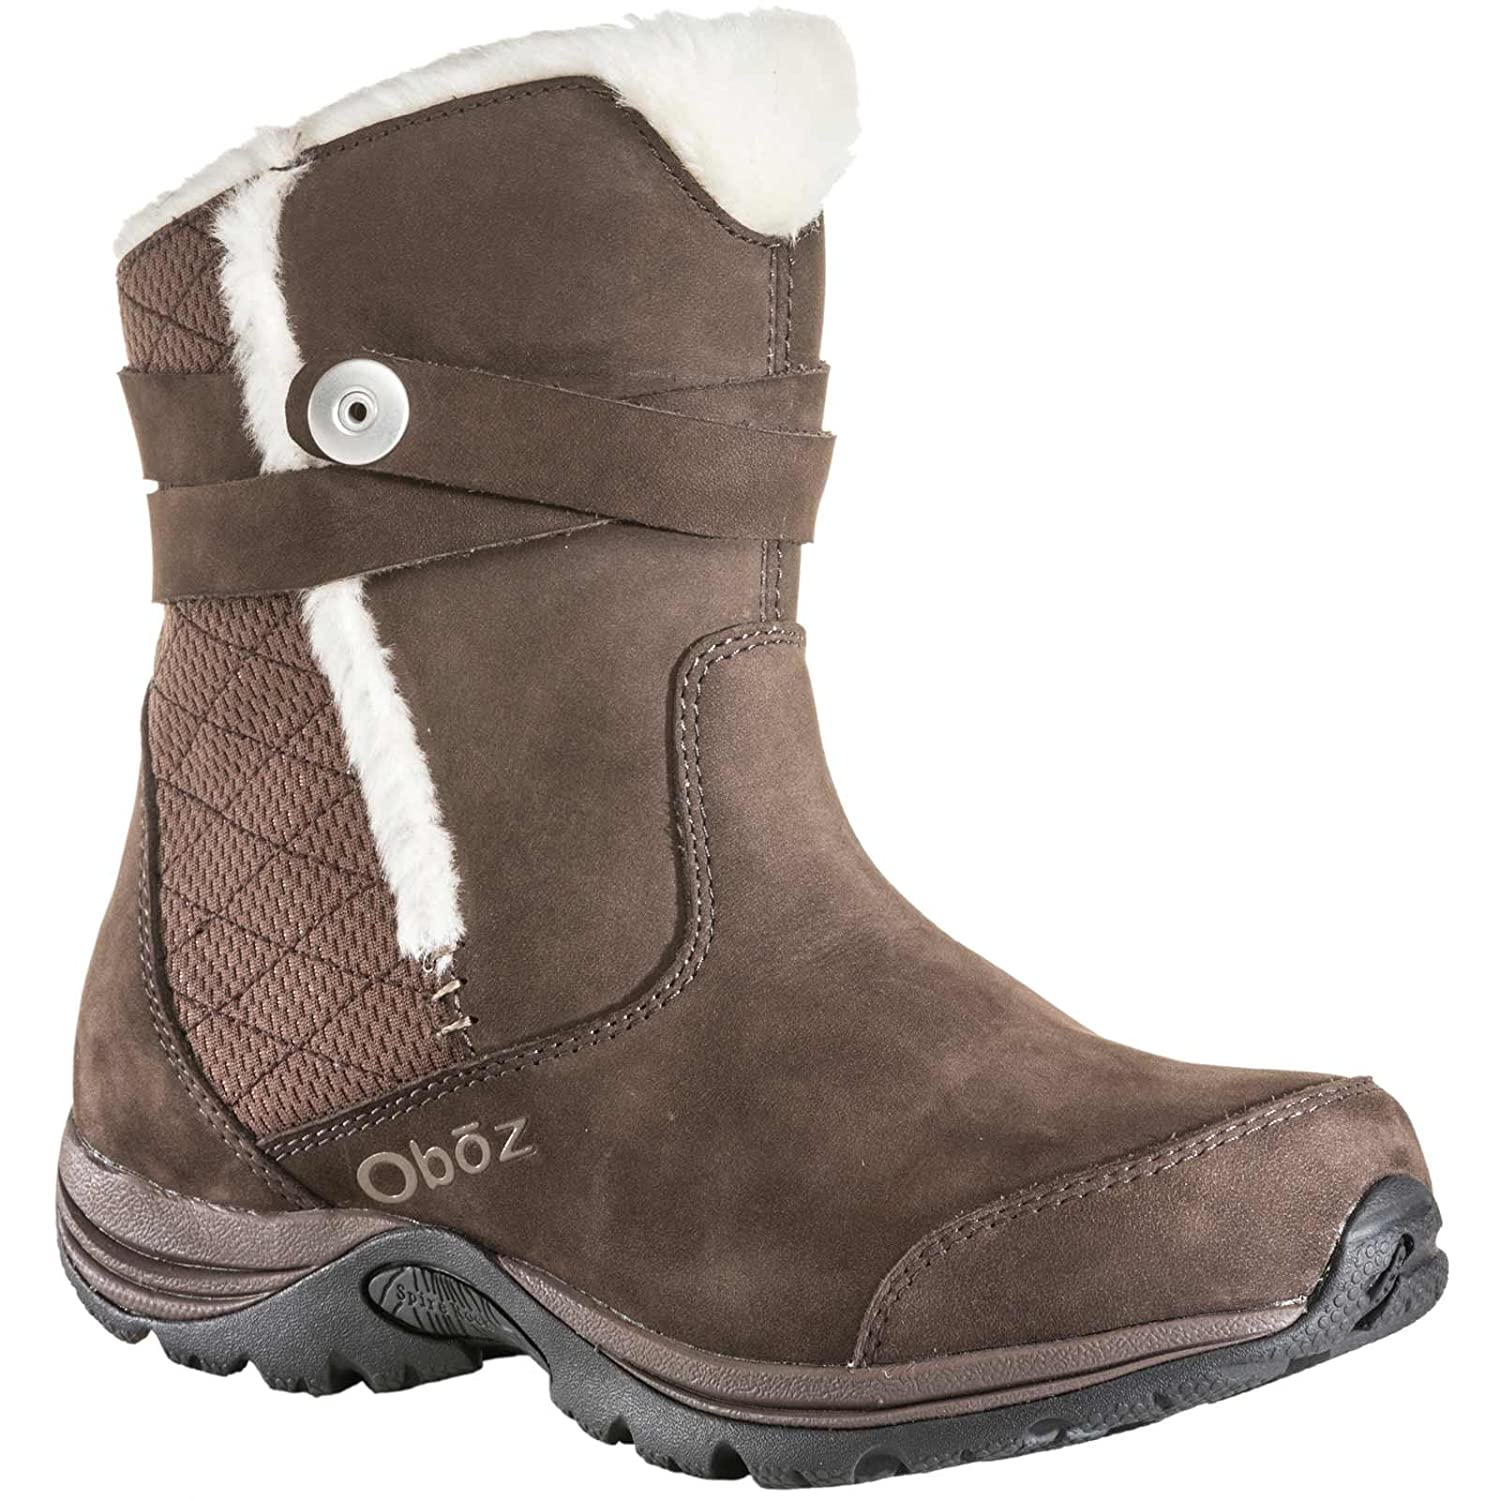 Oboz Women's Madison Insulated Waterproof Boot B01ANK5ENE 6.5 B(M) US|Chocolate